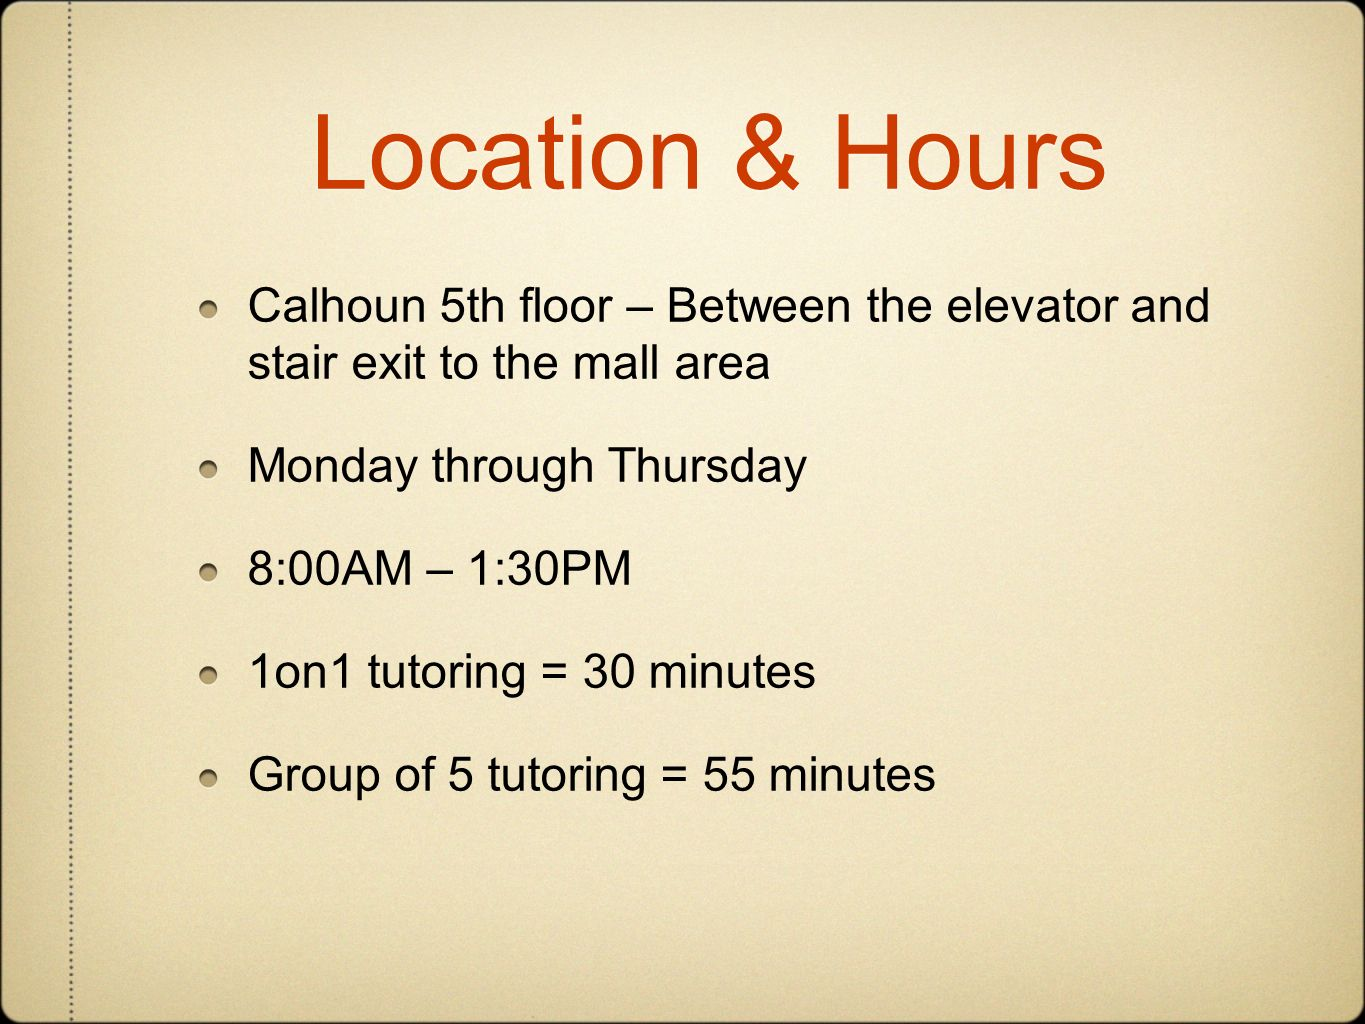 Location & Hours Calhoun 5th floor – Between the elevator and stair exit to the mall area Monday through Thursday 8:00AM – 1:30PM 1on1 tutoring = 30 minutes Group of 5 tutoring = 55 minutes